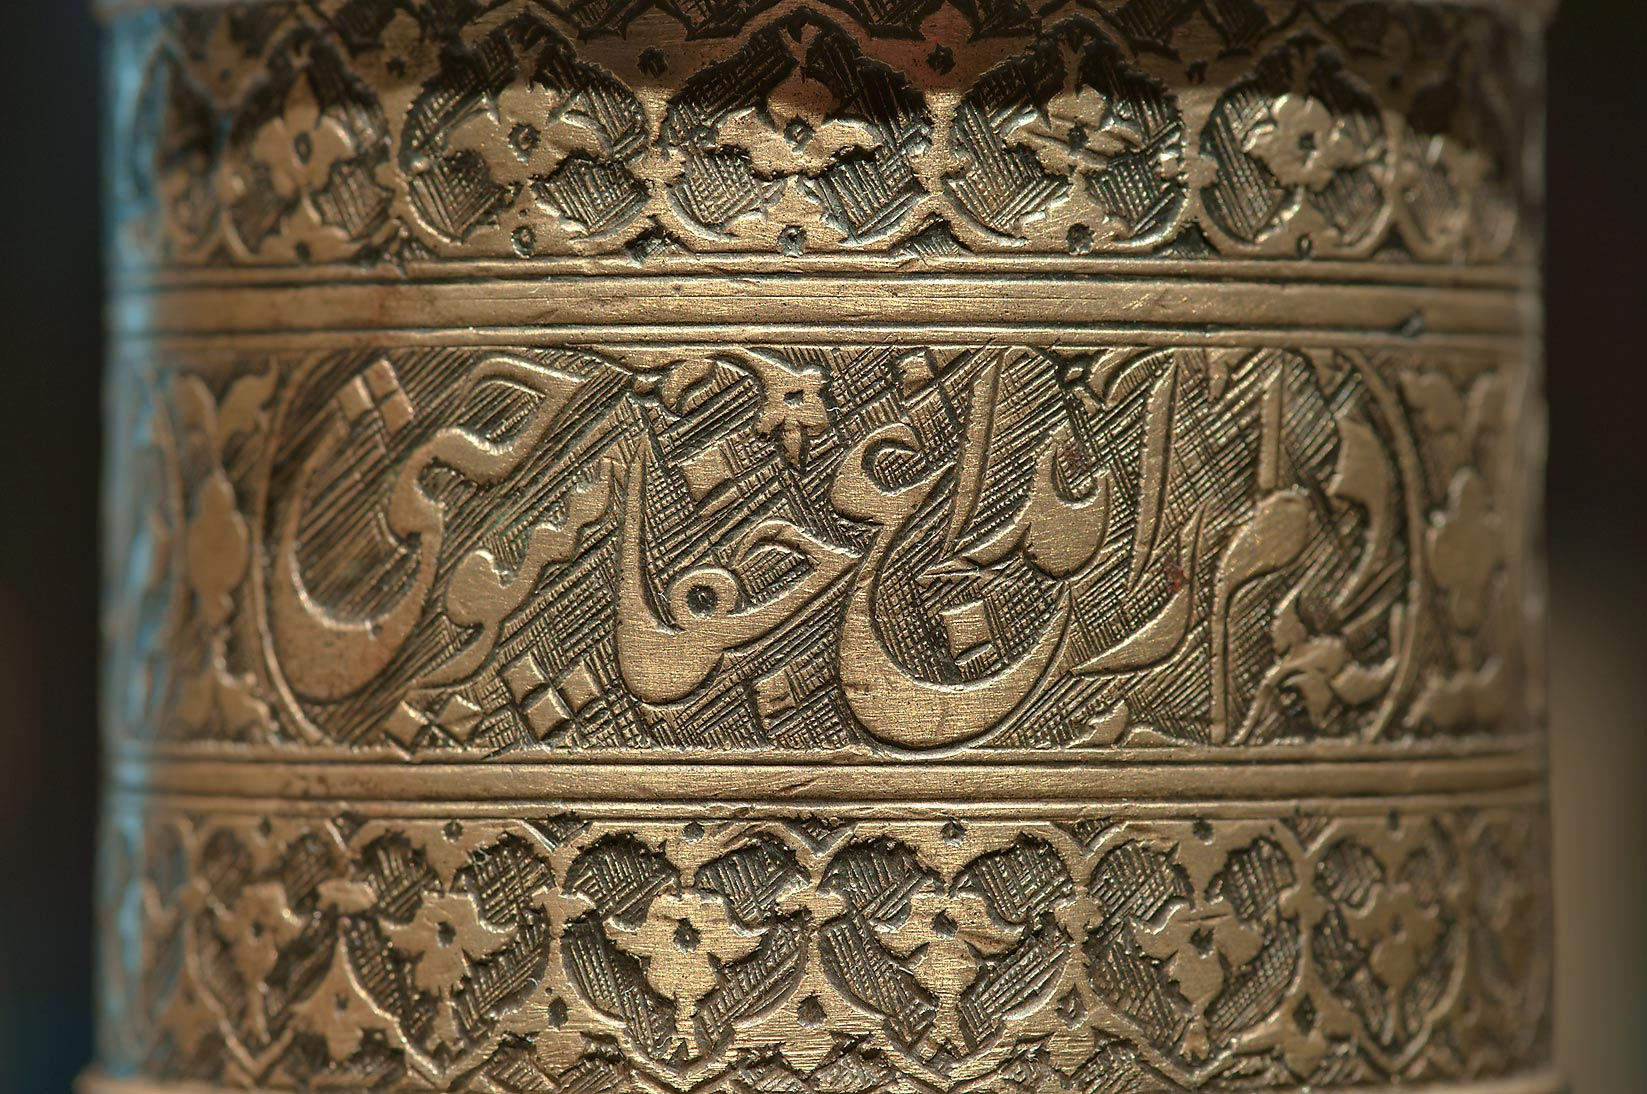 Engraving on brass on display in Museum of Islamic Art. Doha, Qatar